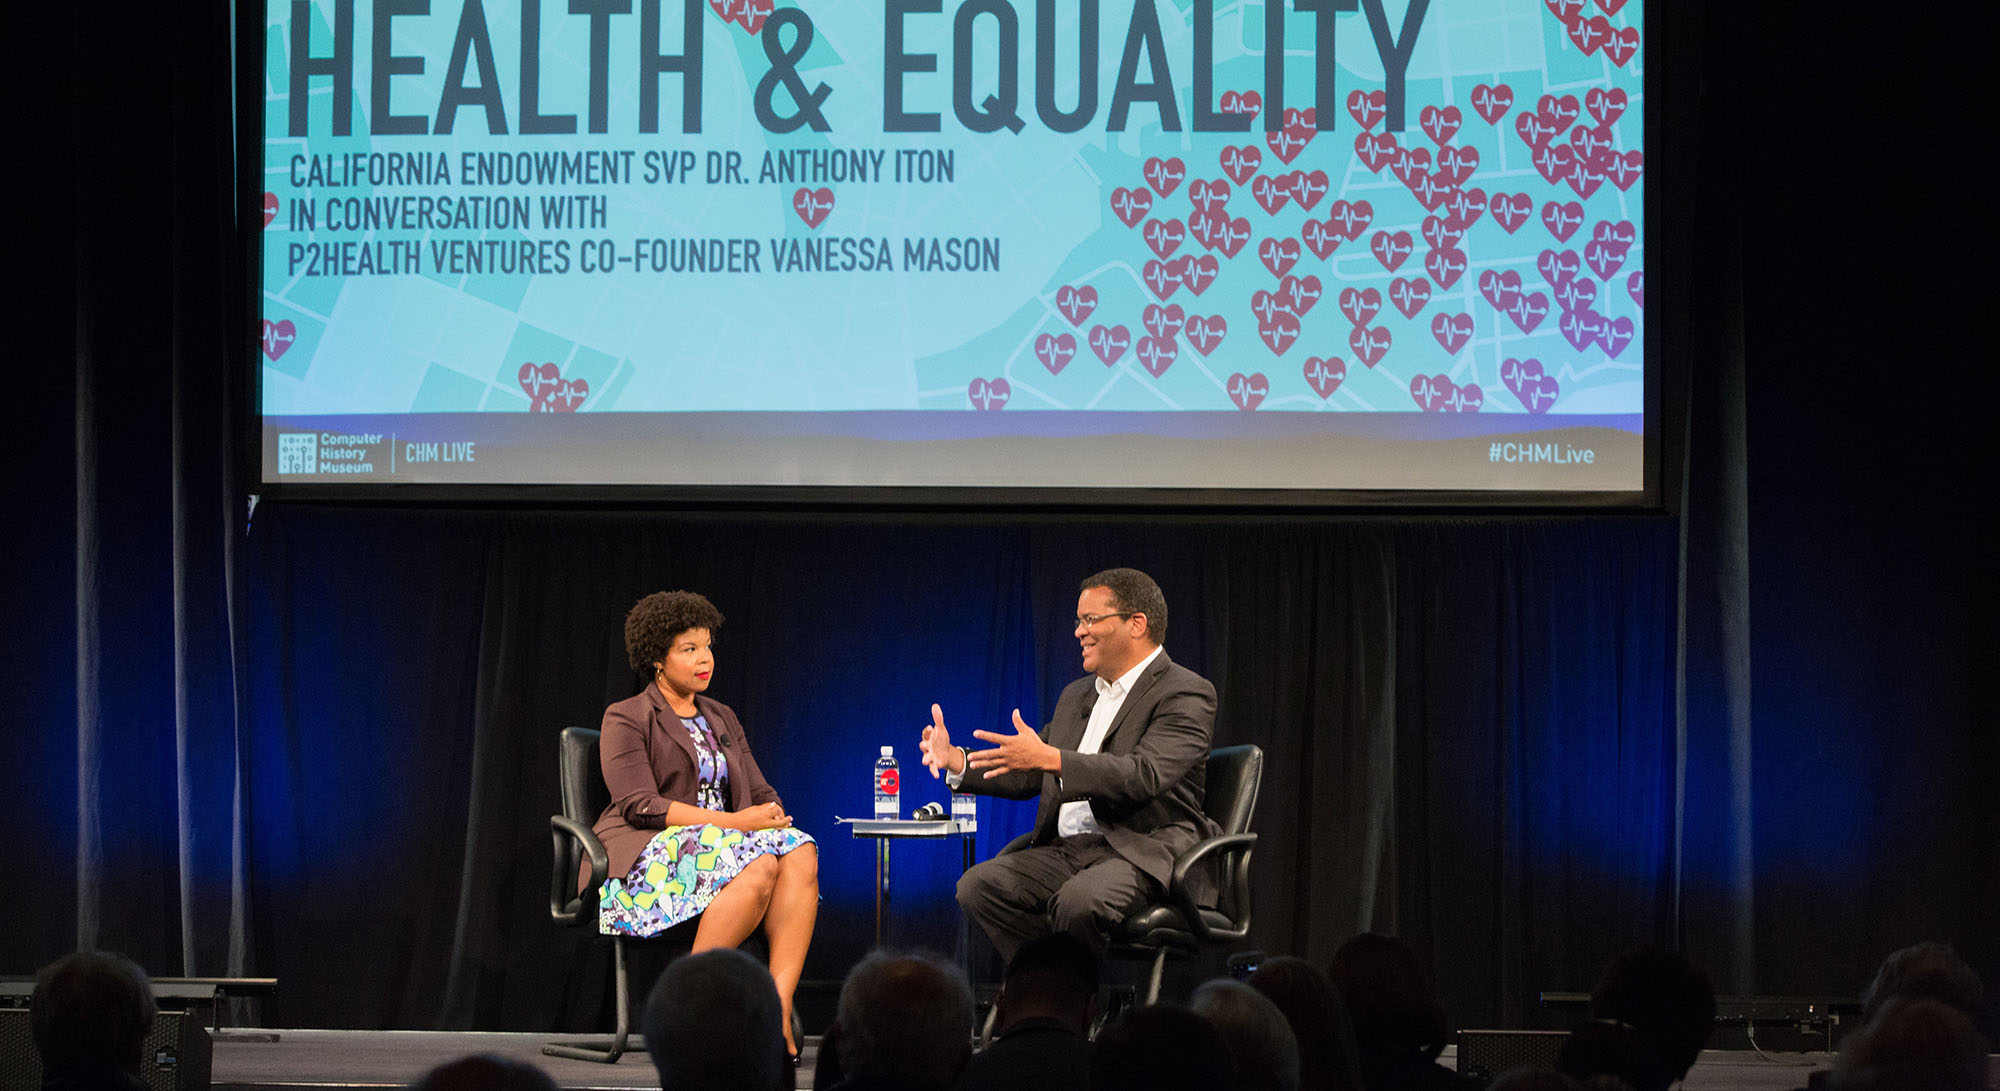 California Endowment SVP Anthony Iton and P2Health Ventures' Vanessa Mason explore the intersection of health, technology, and equality.